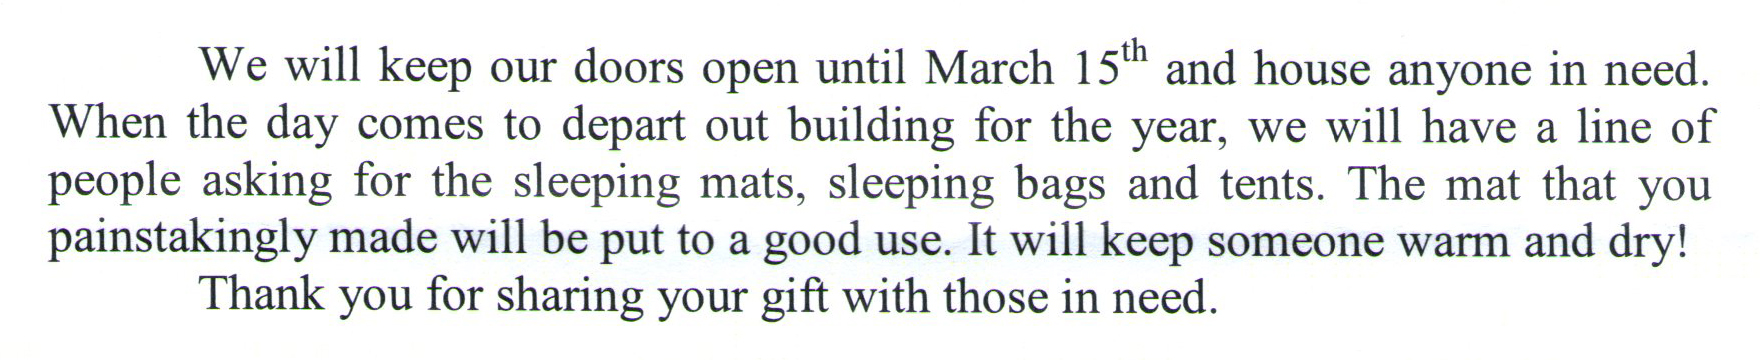 Wheeling Youth Services Letter about crochet plastic mat- hijennybrown.com